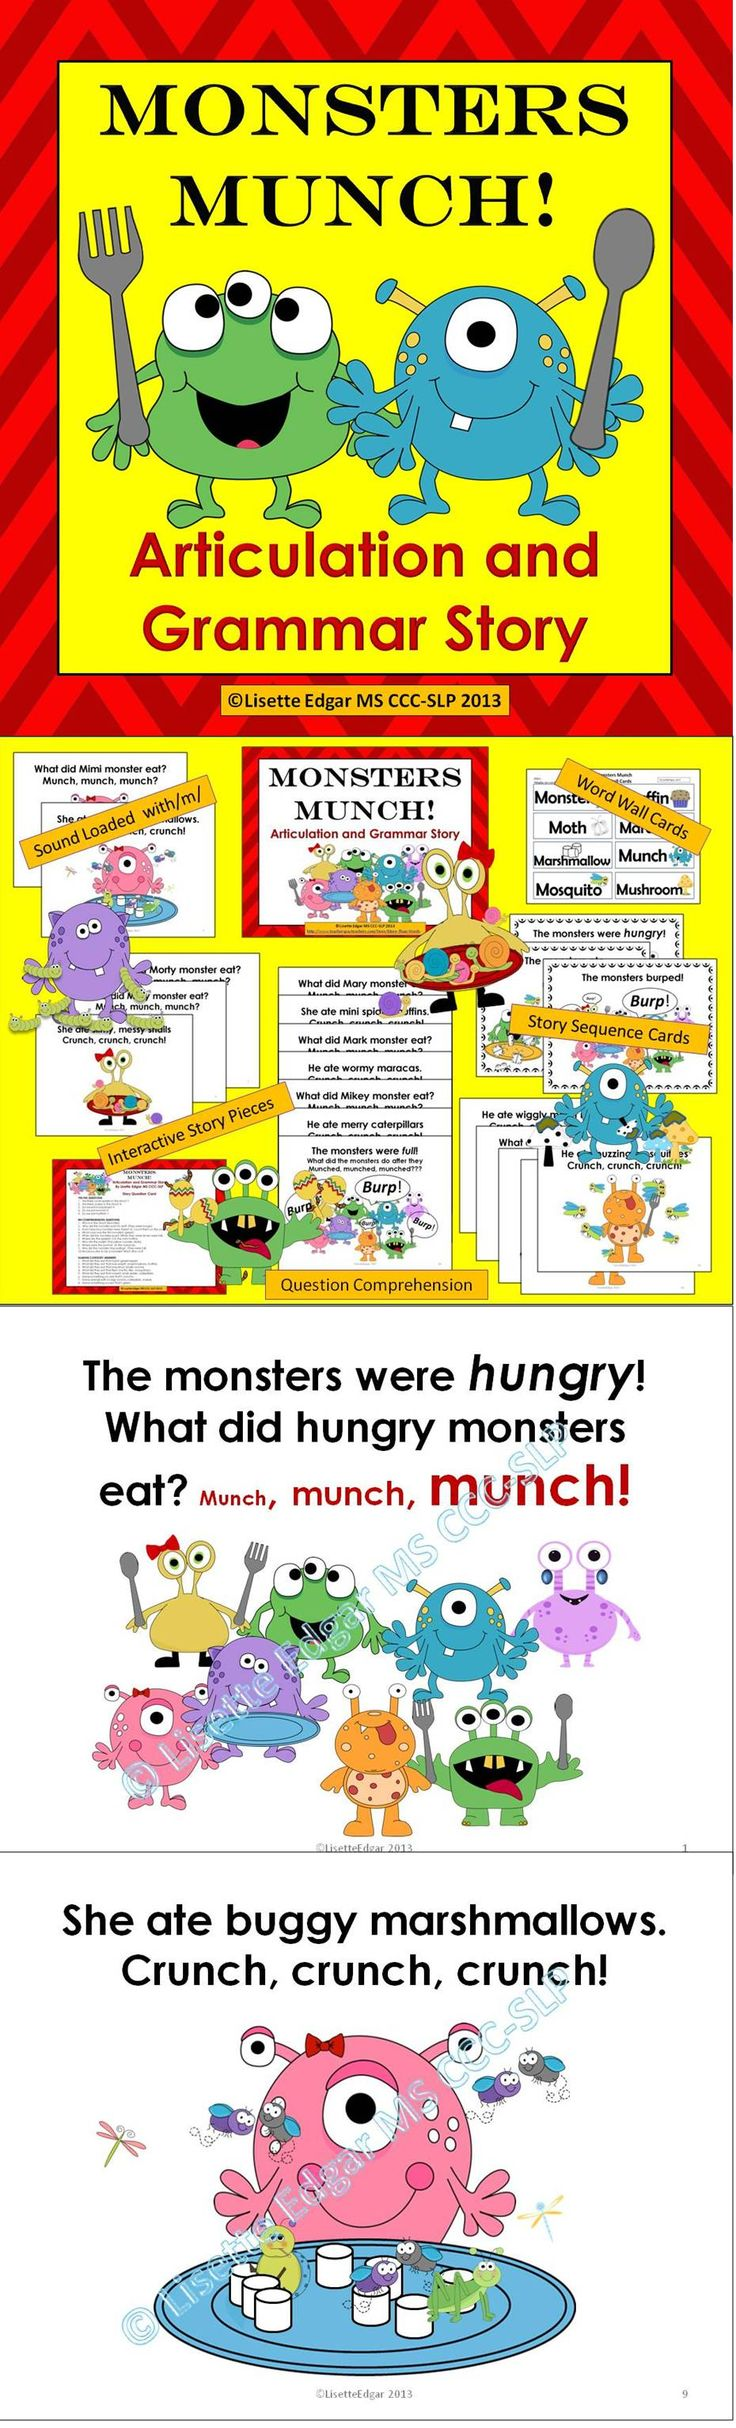 $ Monster fun abounds in this sound-loaded, interactive story. Features repetitive text, questions and prompts for grammar, articulation, wh questions and categorization. Great for Halloween, Autumn or anytime!